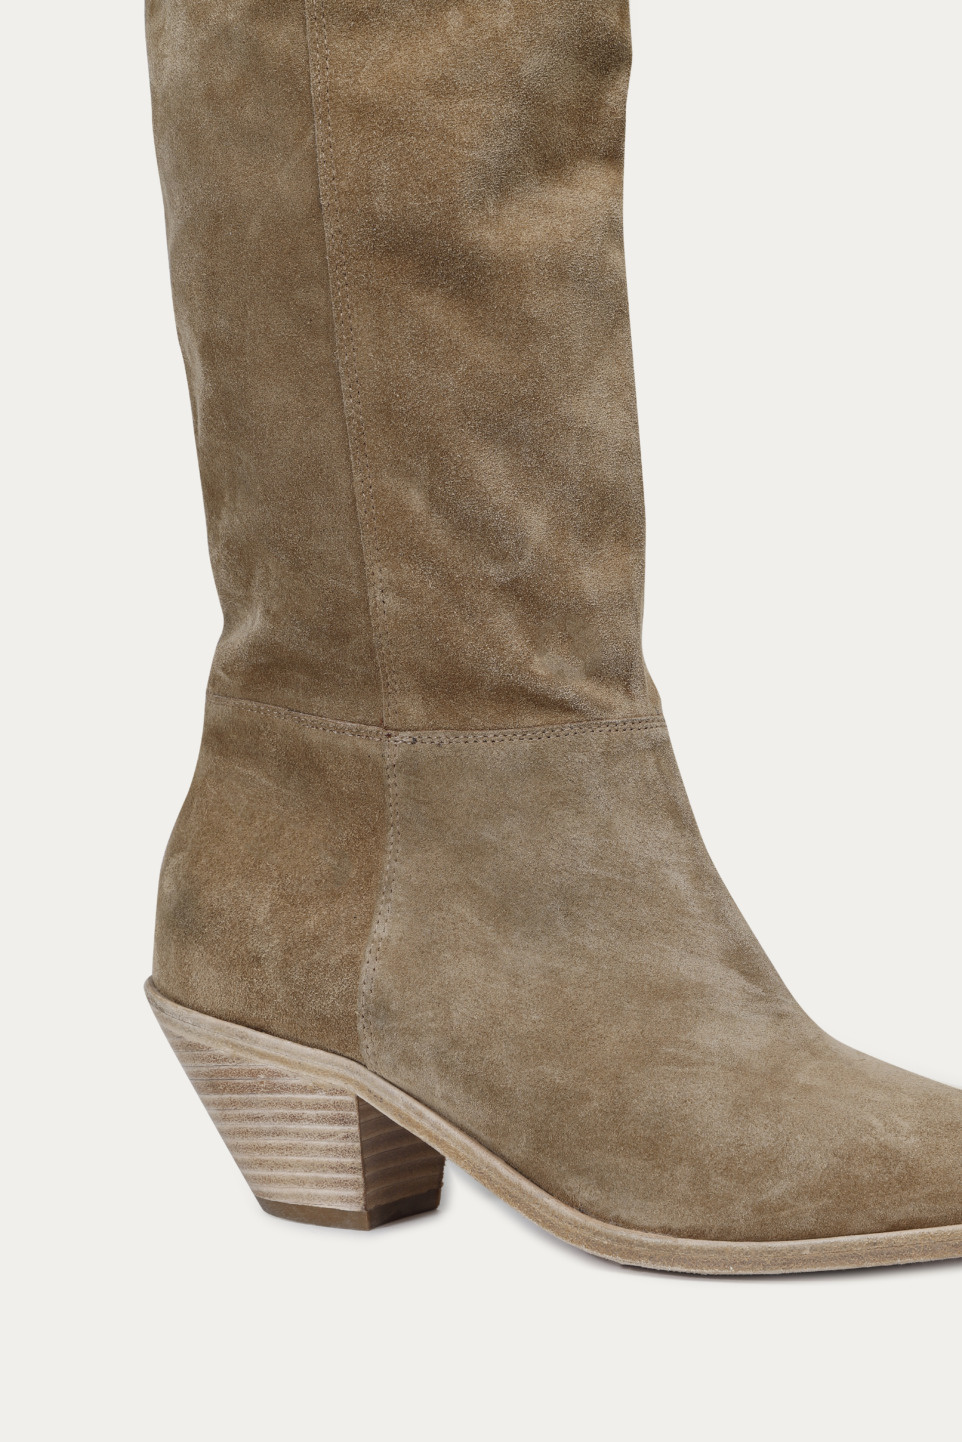 Cowby Boots - Raw Sable 37-4